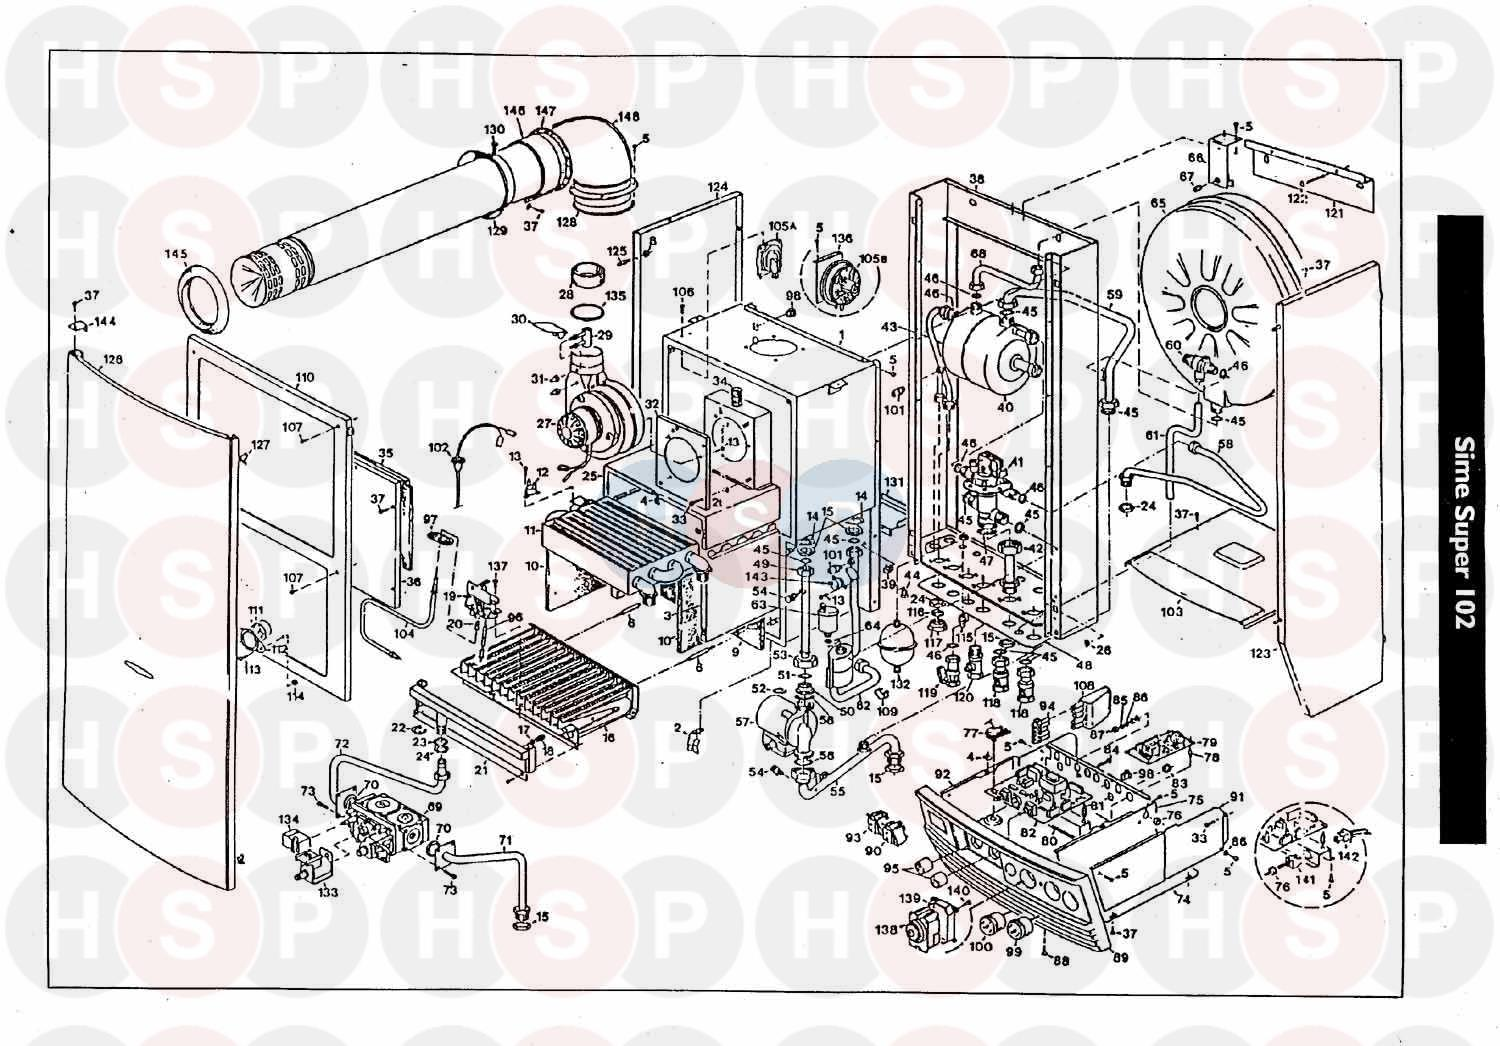 Sime Super 102 Deluxe Exploded View Diagram Heating